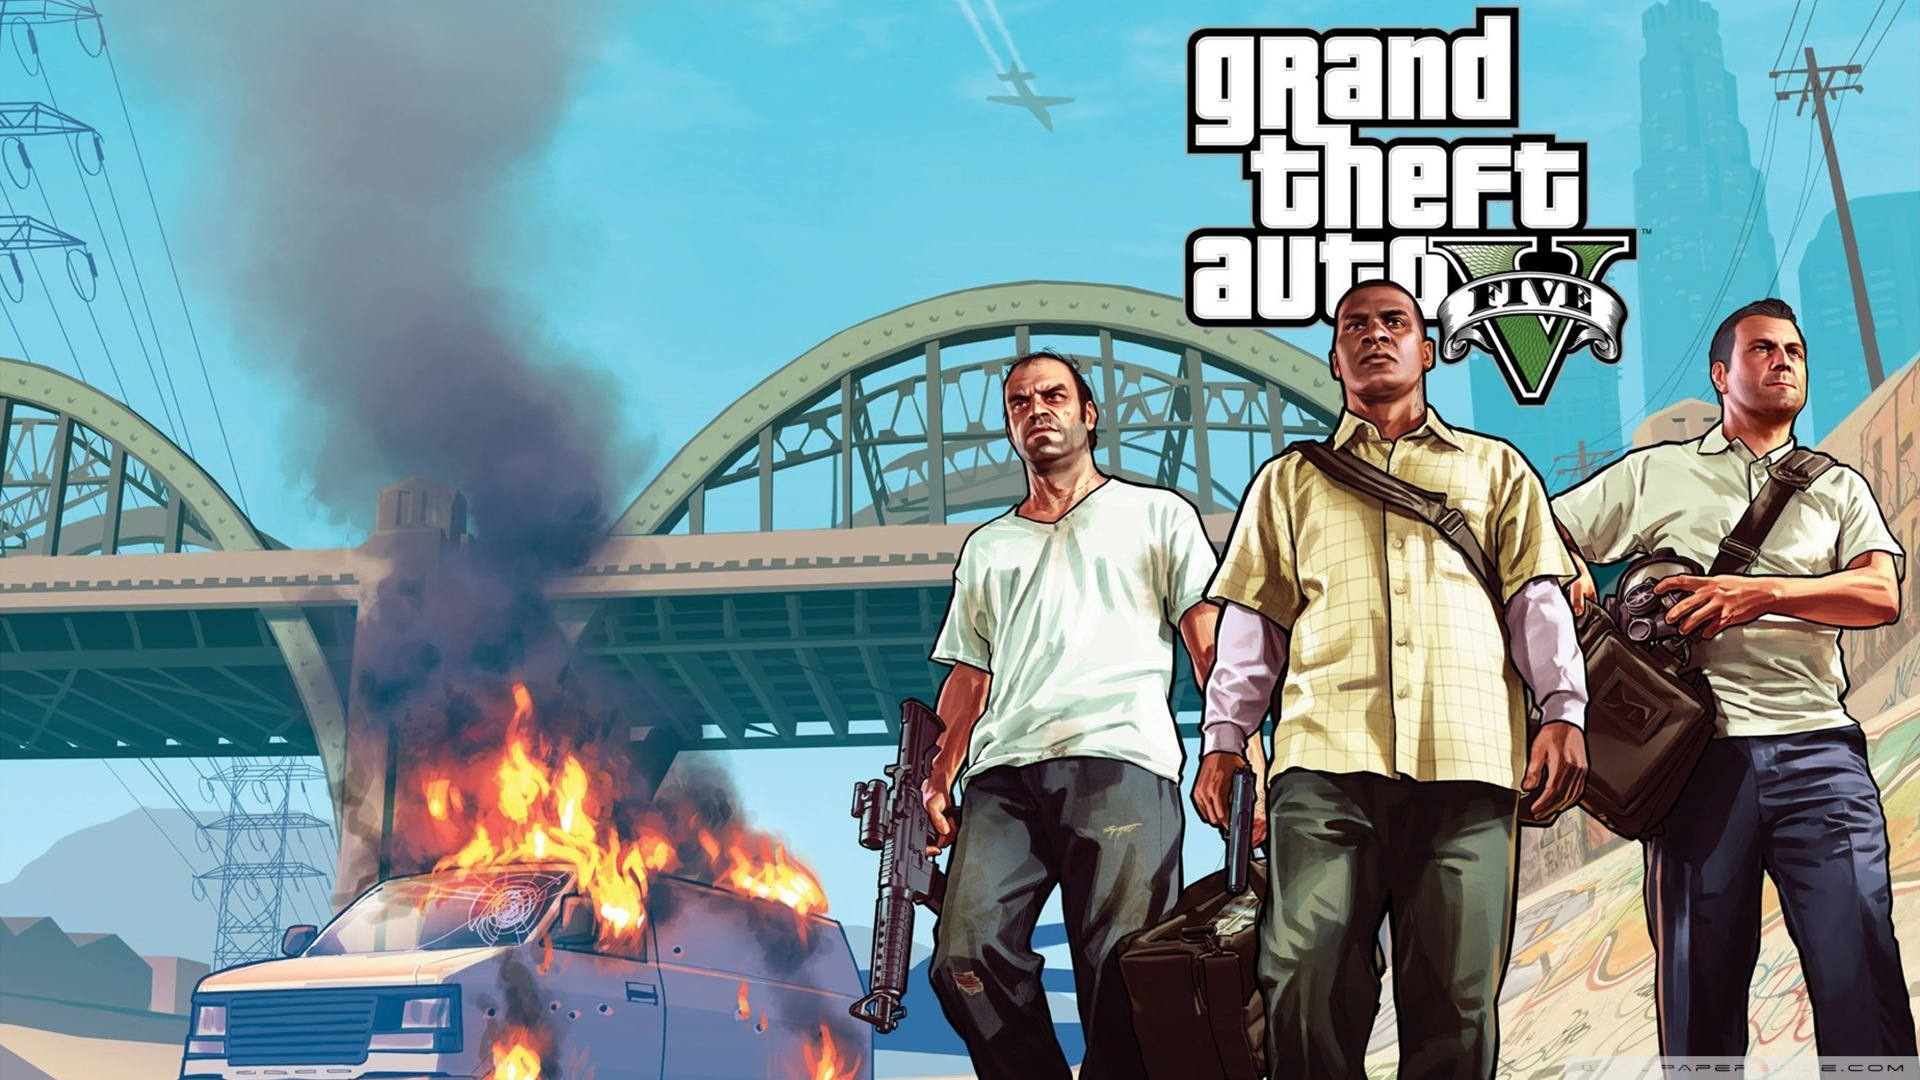 Gta V Trio Wallpaper 1920x1080 Gta V Trio 1920x1080